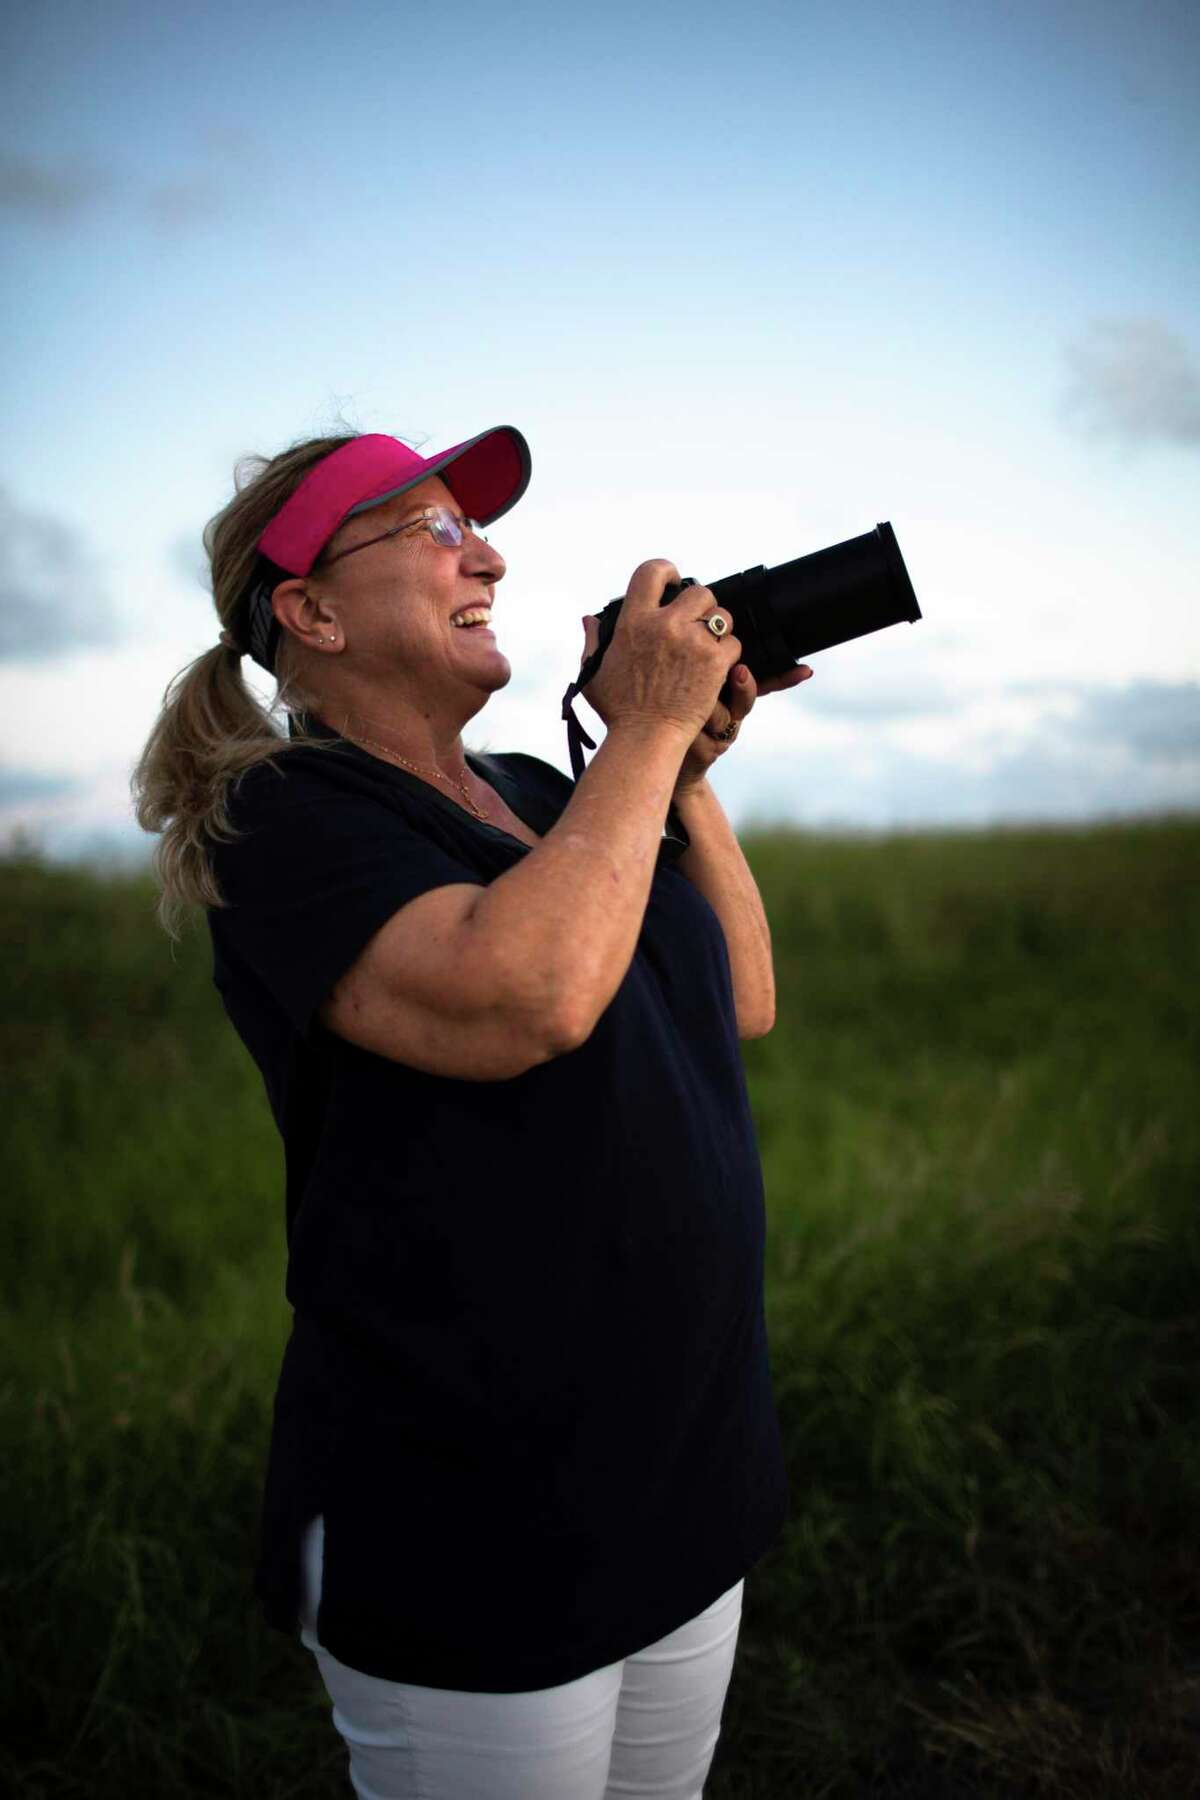 Maria Pointer, a neighbor of the SpaceX facilities in Boca Chica where a prototype of SpaceX's Starship vehicle has been constructed, photographs the vehicle at dusk on Friday, Sept. 27, 2019, in Boca Chica.